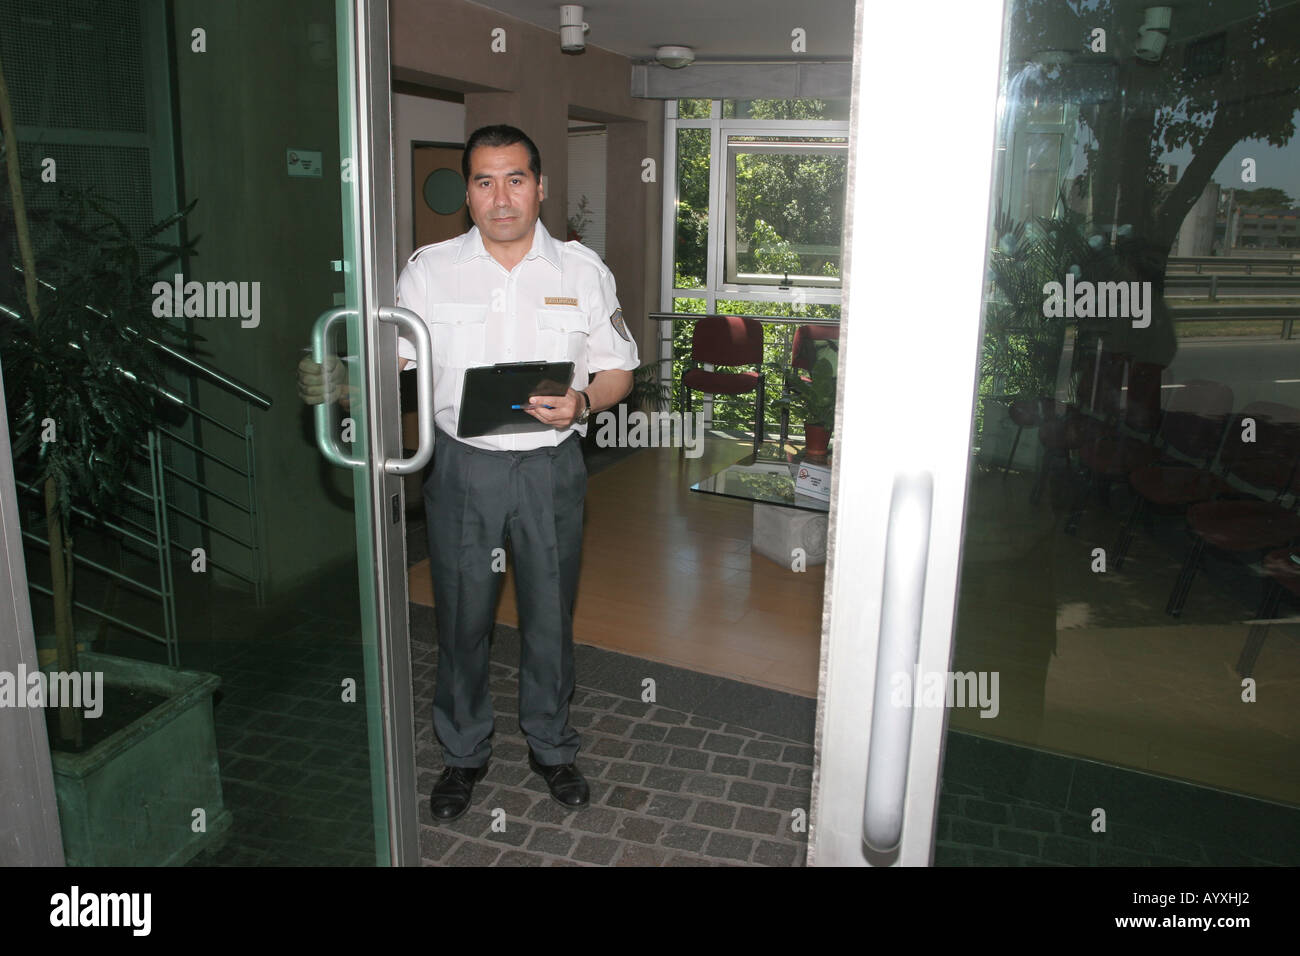 A Security Guard Opening The Front Door Of A Company Or ...